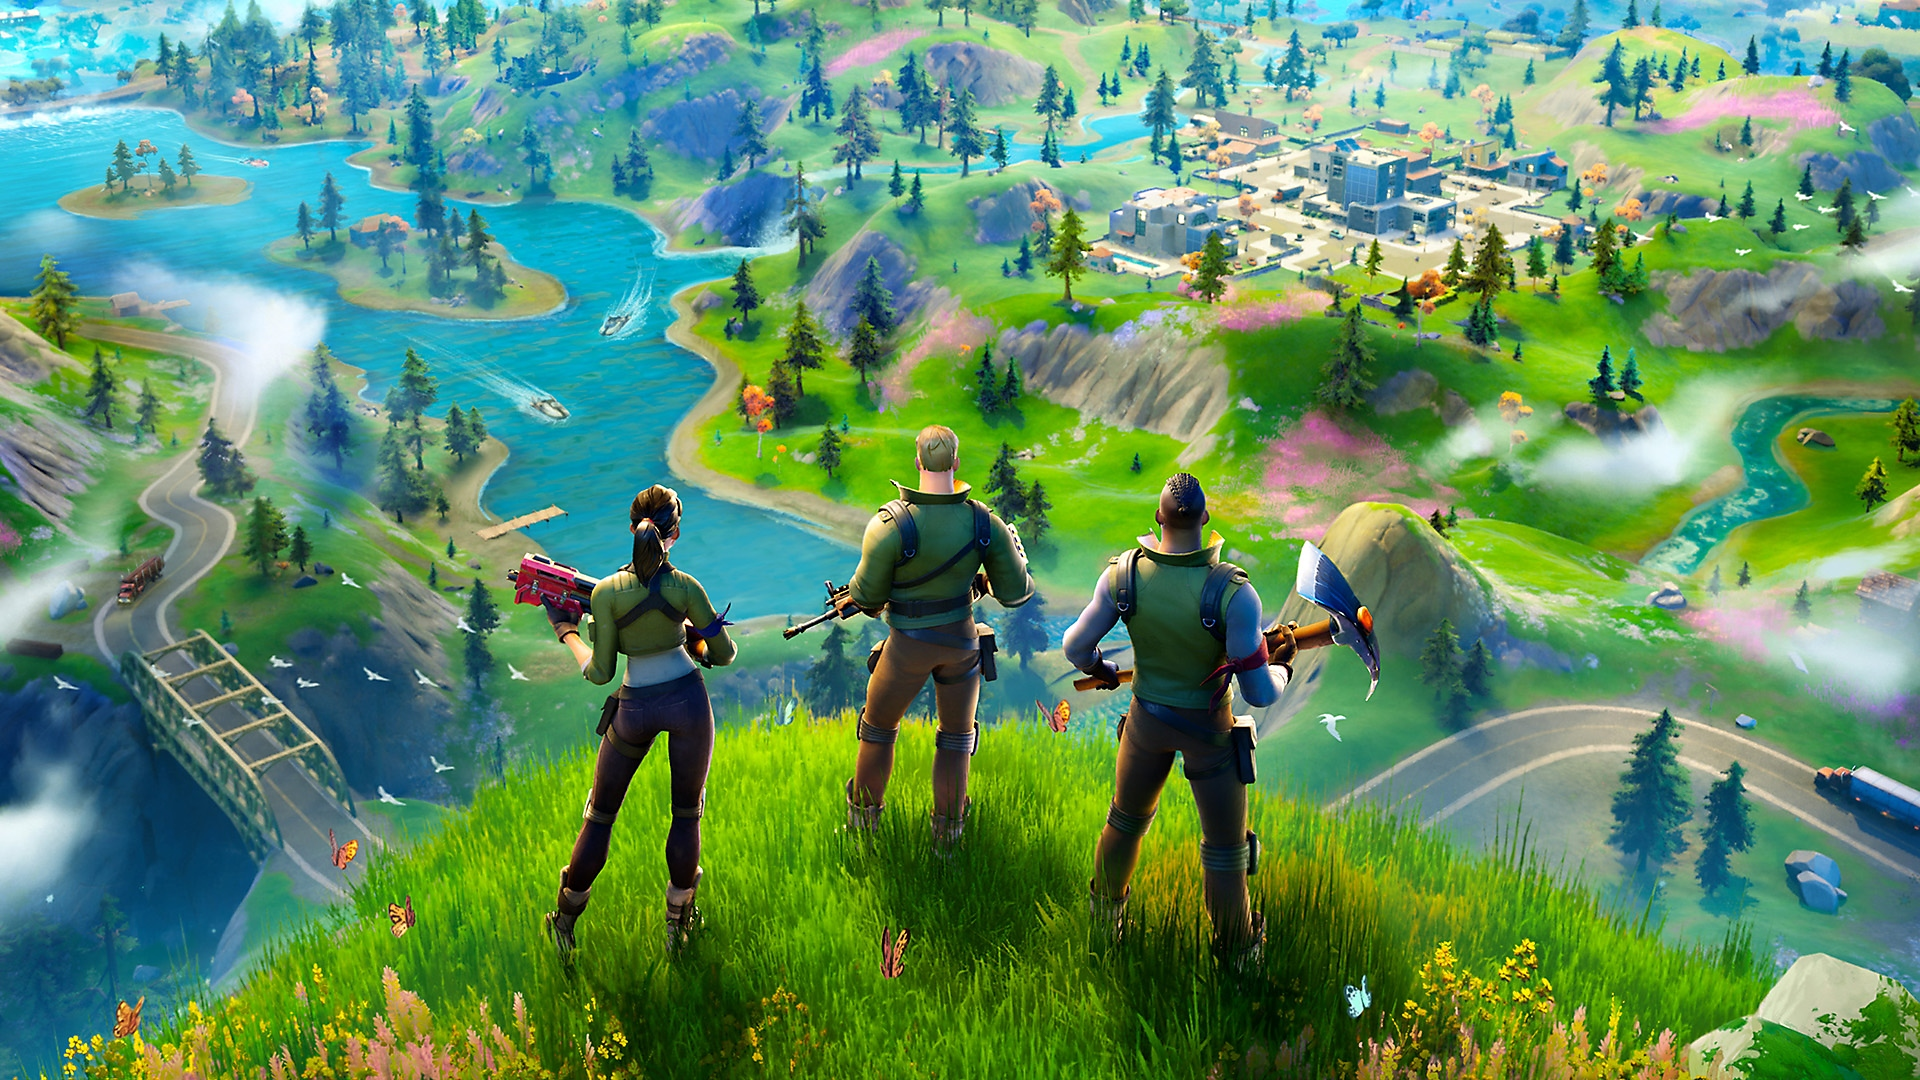 Fortnite – Season 2 key art